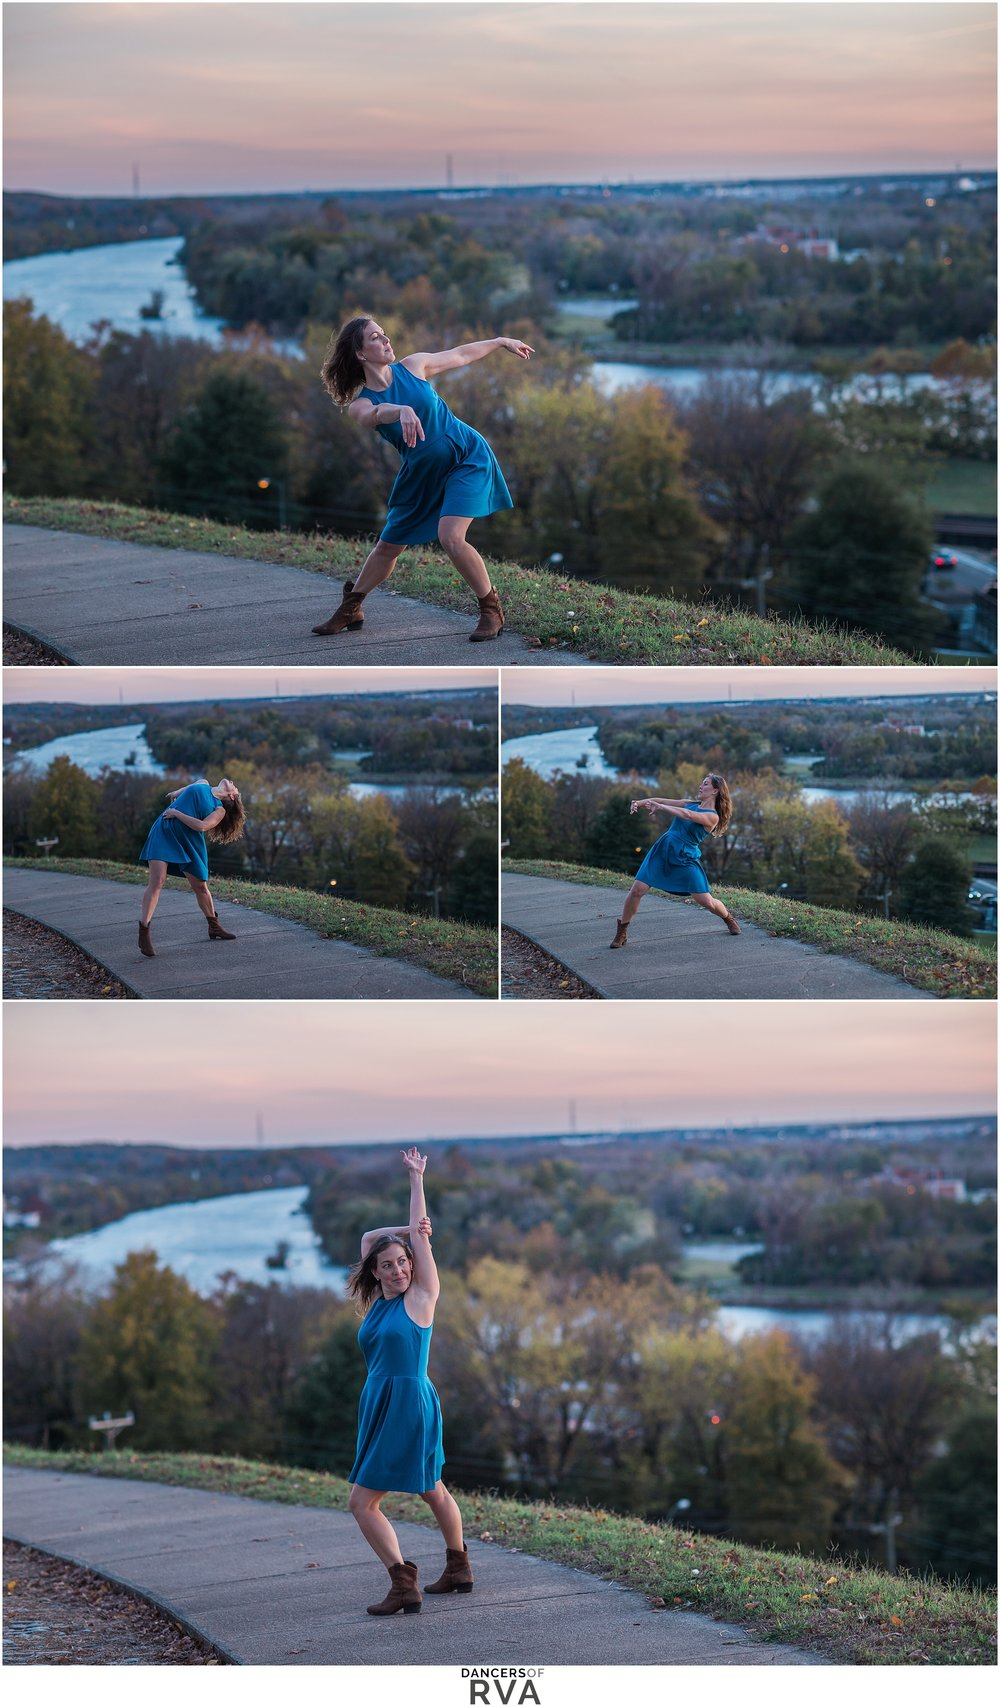 Sunset Session at Libby Hill with Dancers of RVA Richmond VA Photographer